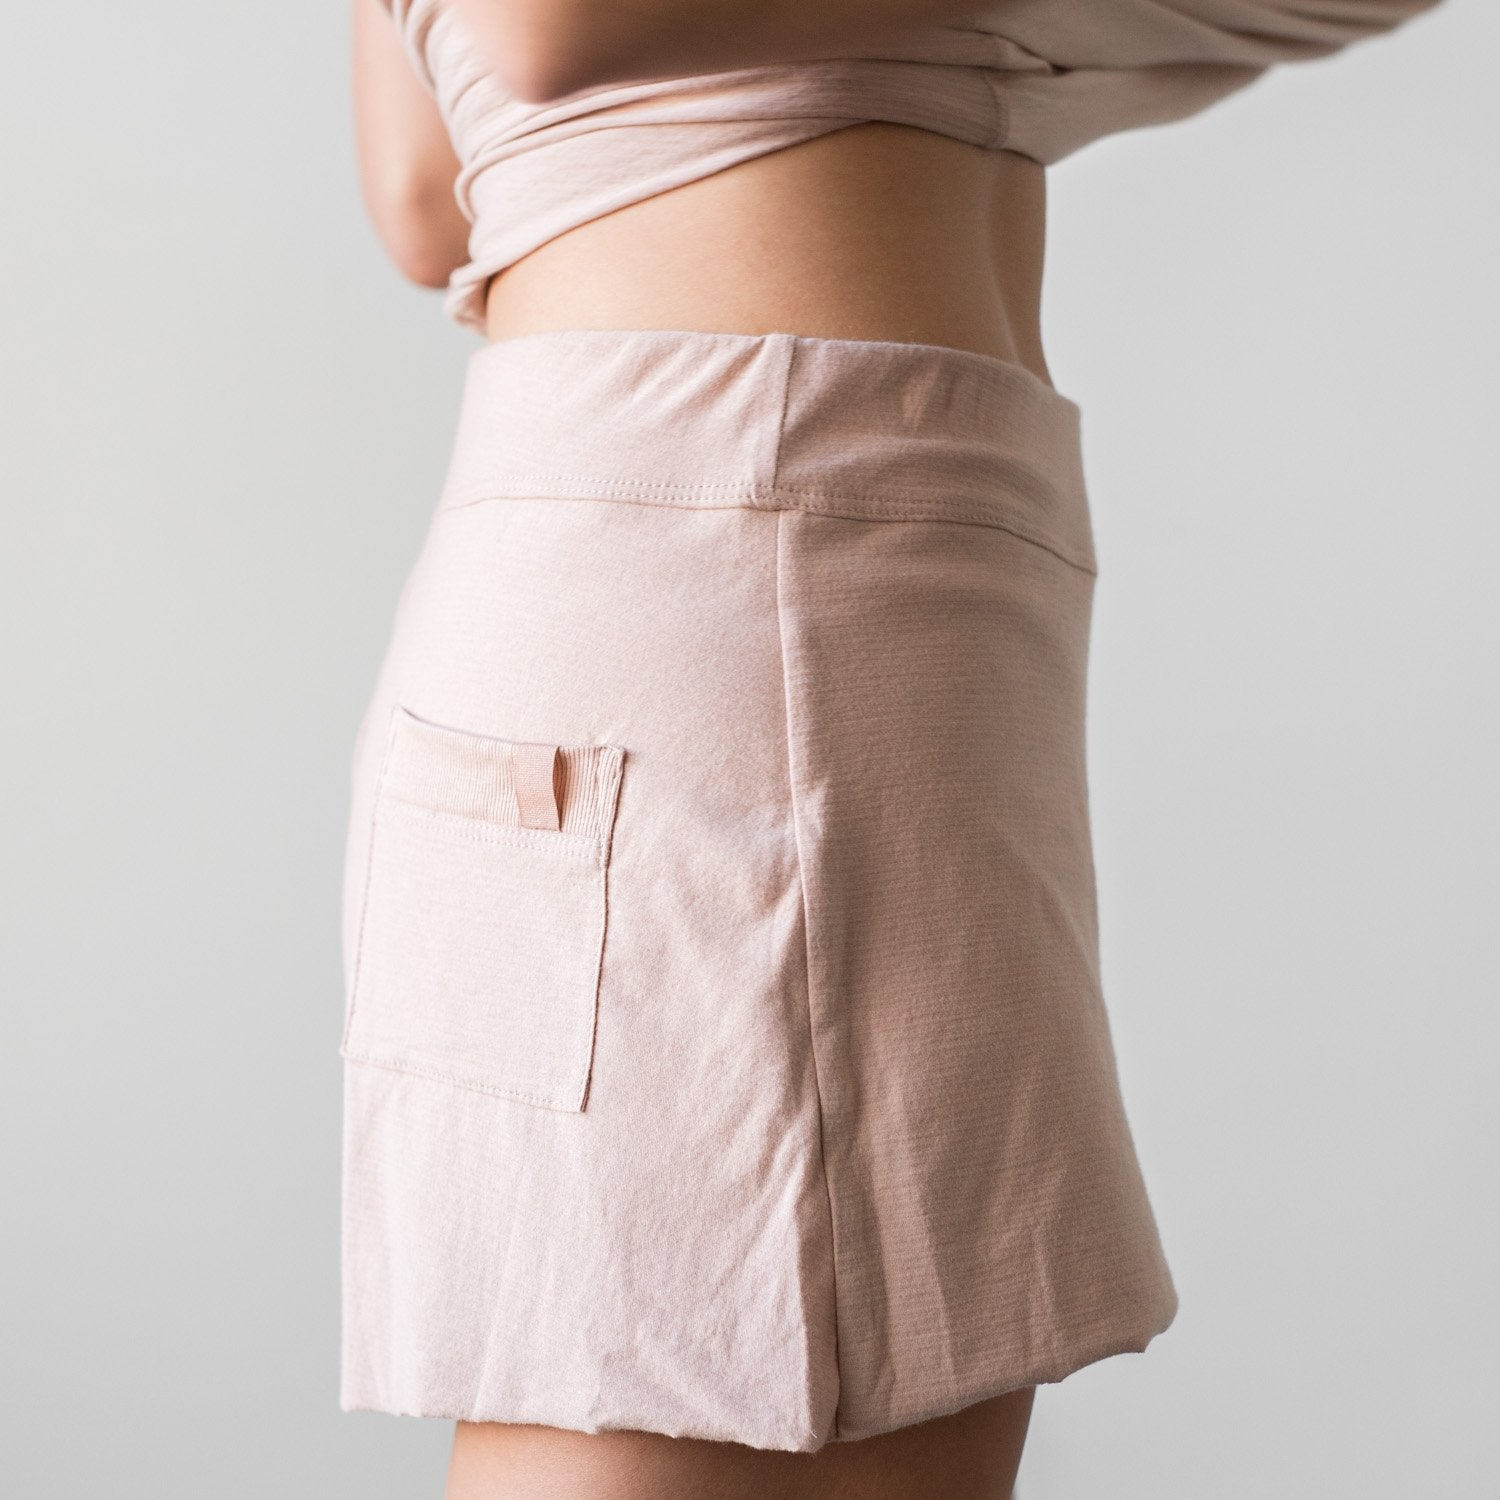 Lunya Sleepwear Cool Short - #Bare